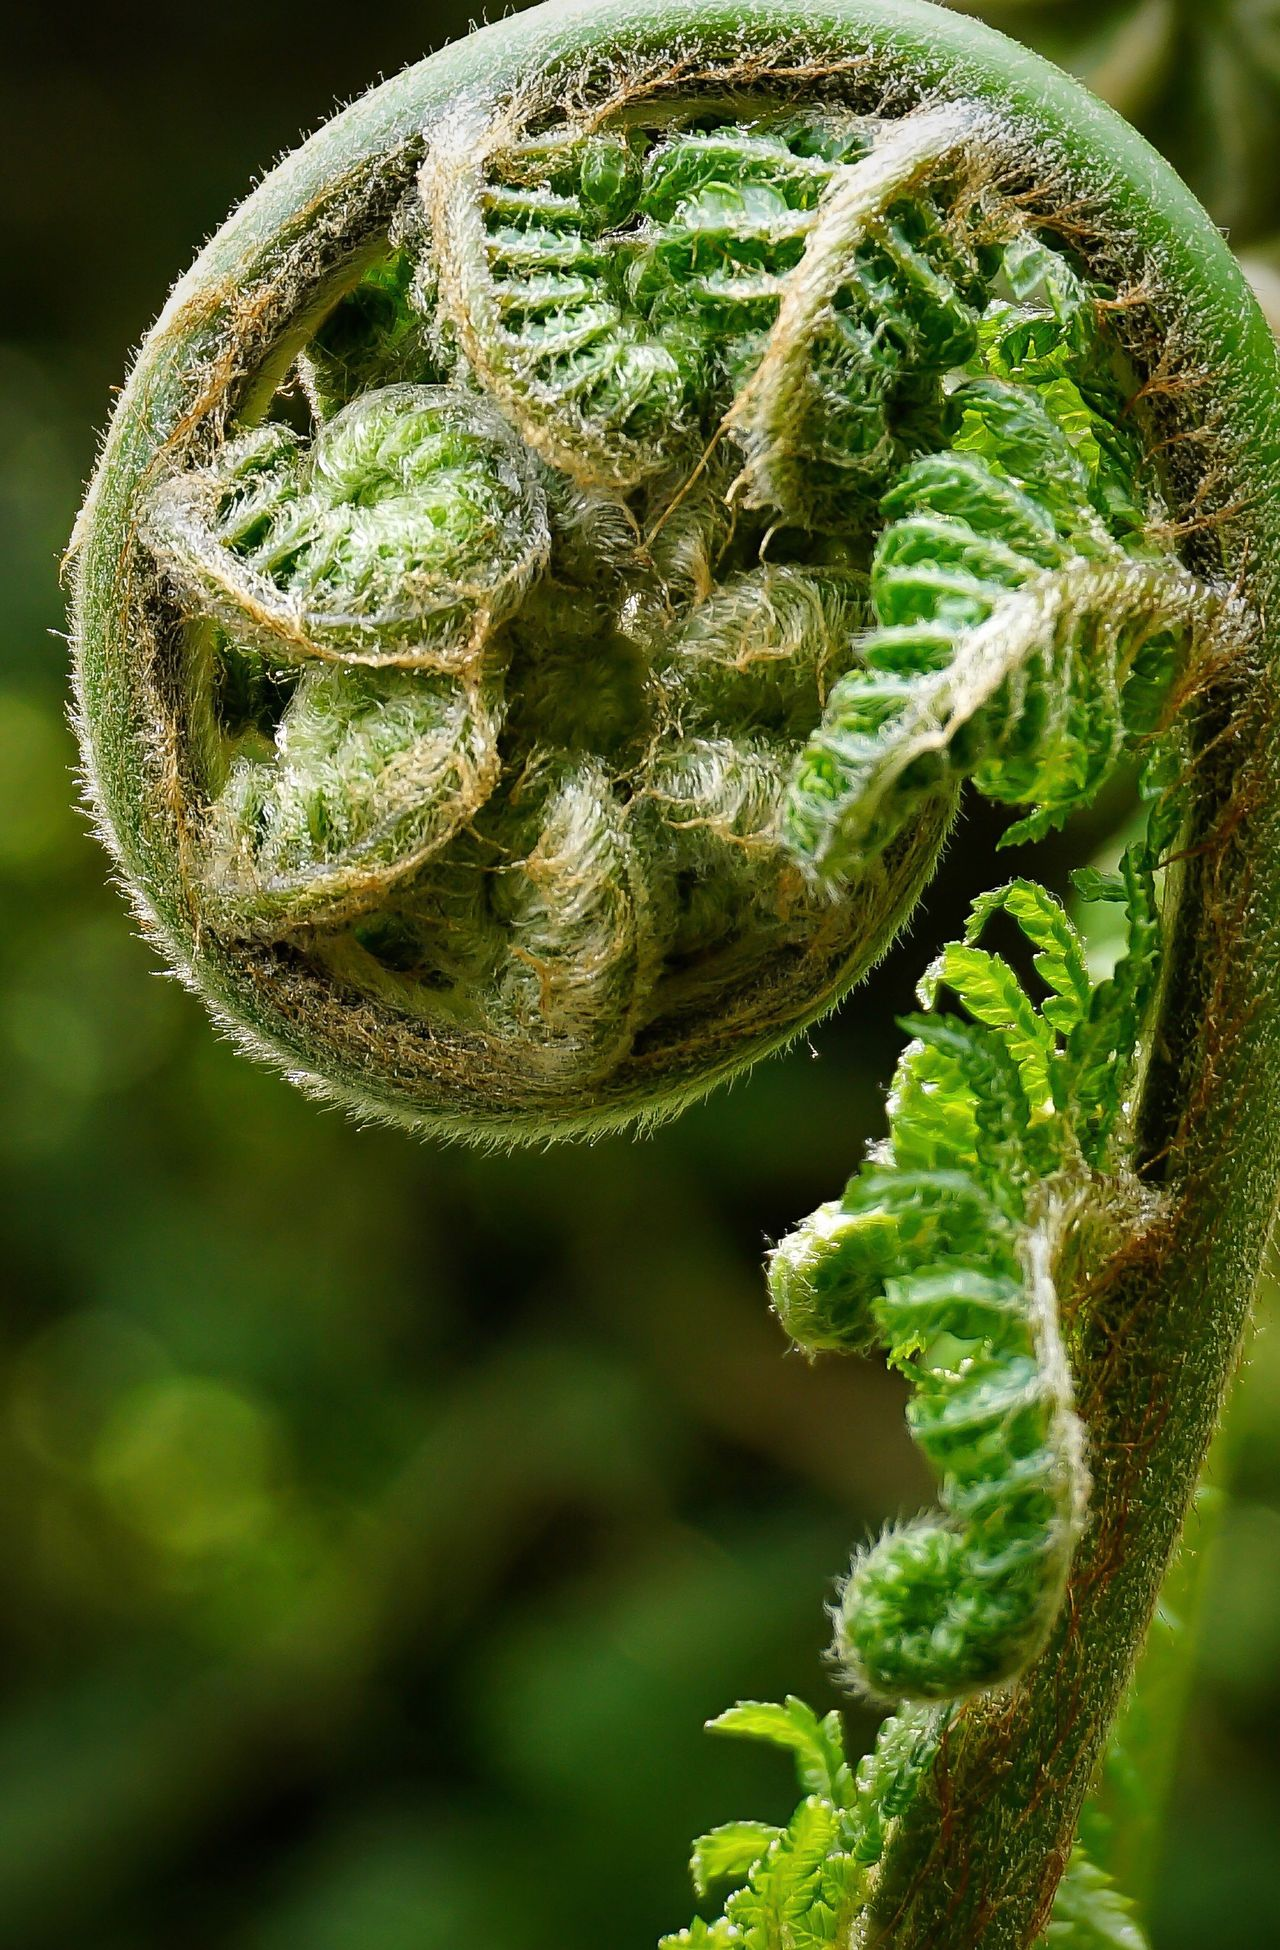 Fern Green Color Nature Growth Green Close-up Plant Outdoors Spiral Photosynthesis Beauty In Nature Curled Up Curled Growing Freshness Greenery Curl Bud Plant Ferns Growth Hairy  Macro